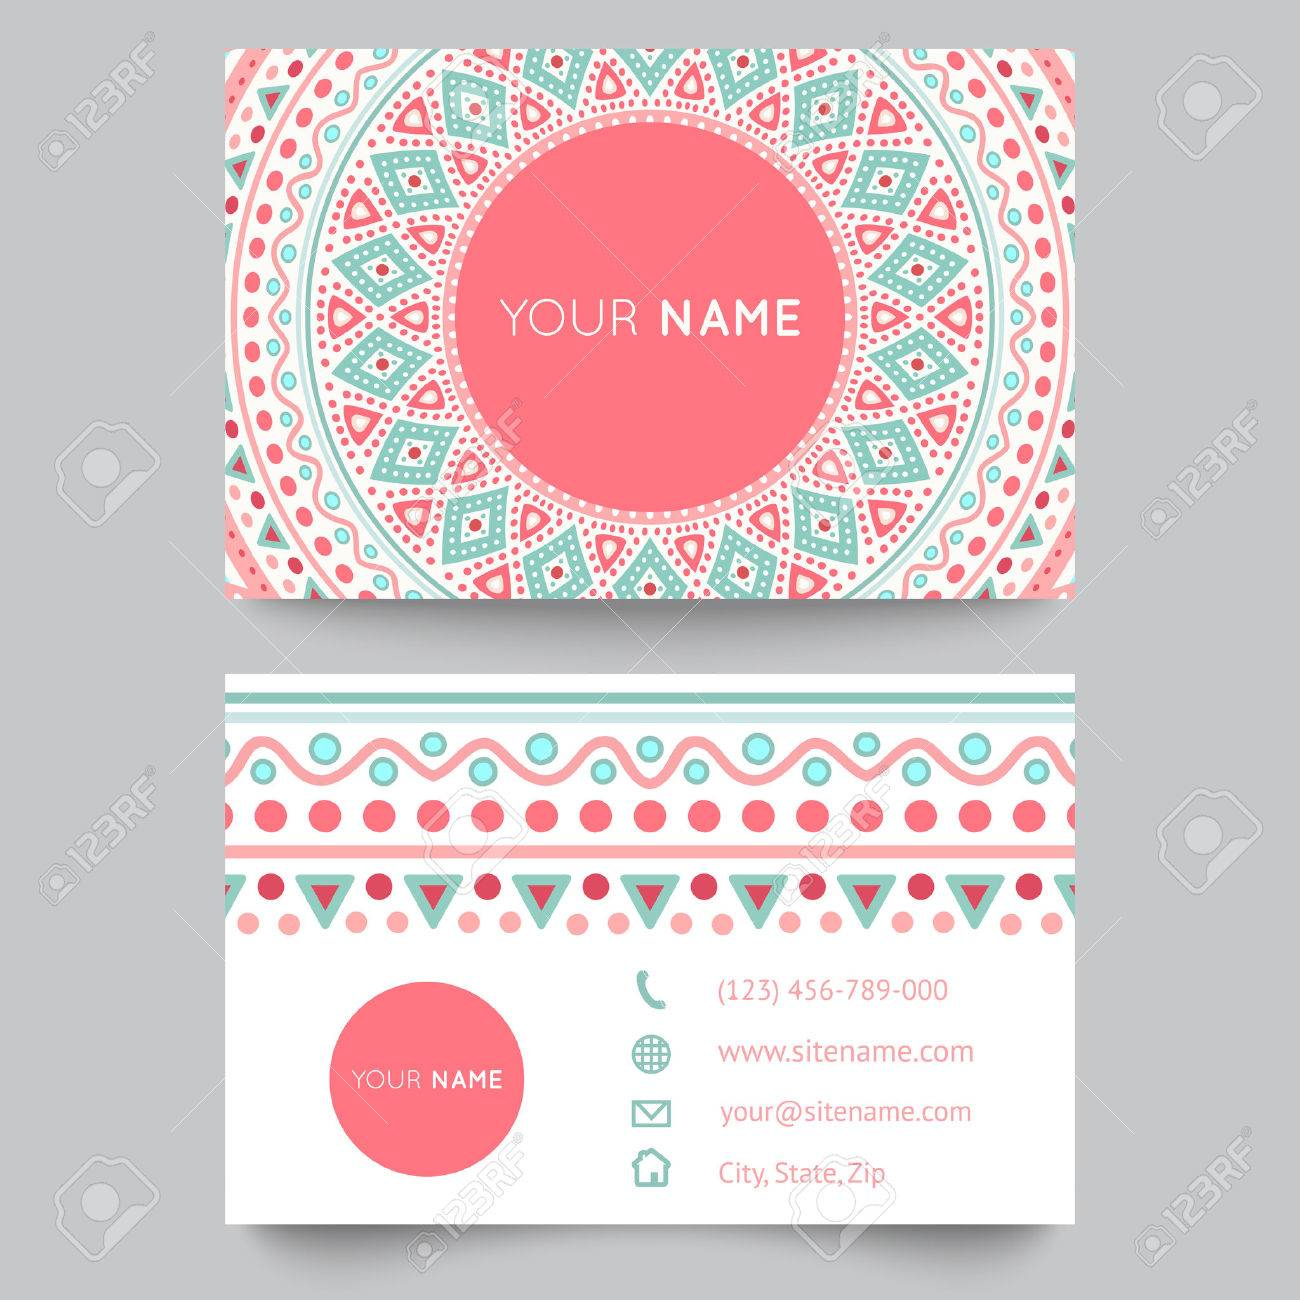 Business card template blue white and pink beauty fashion pattern business card template blue white and pink beauty fashion pattern vector design editable trible fbccfo